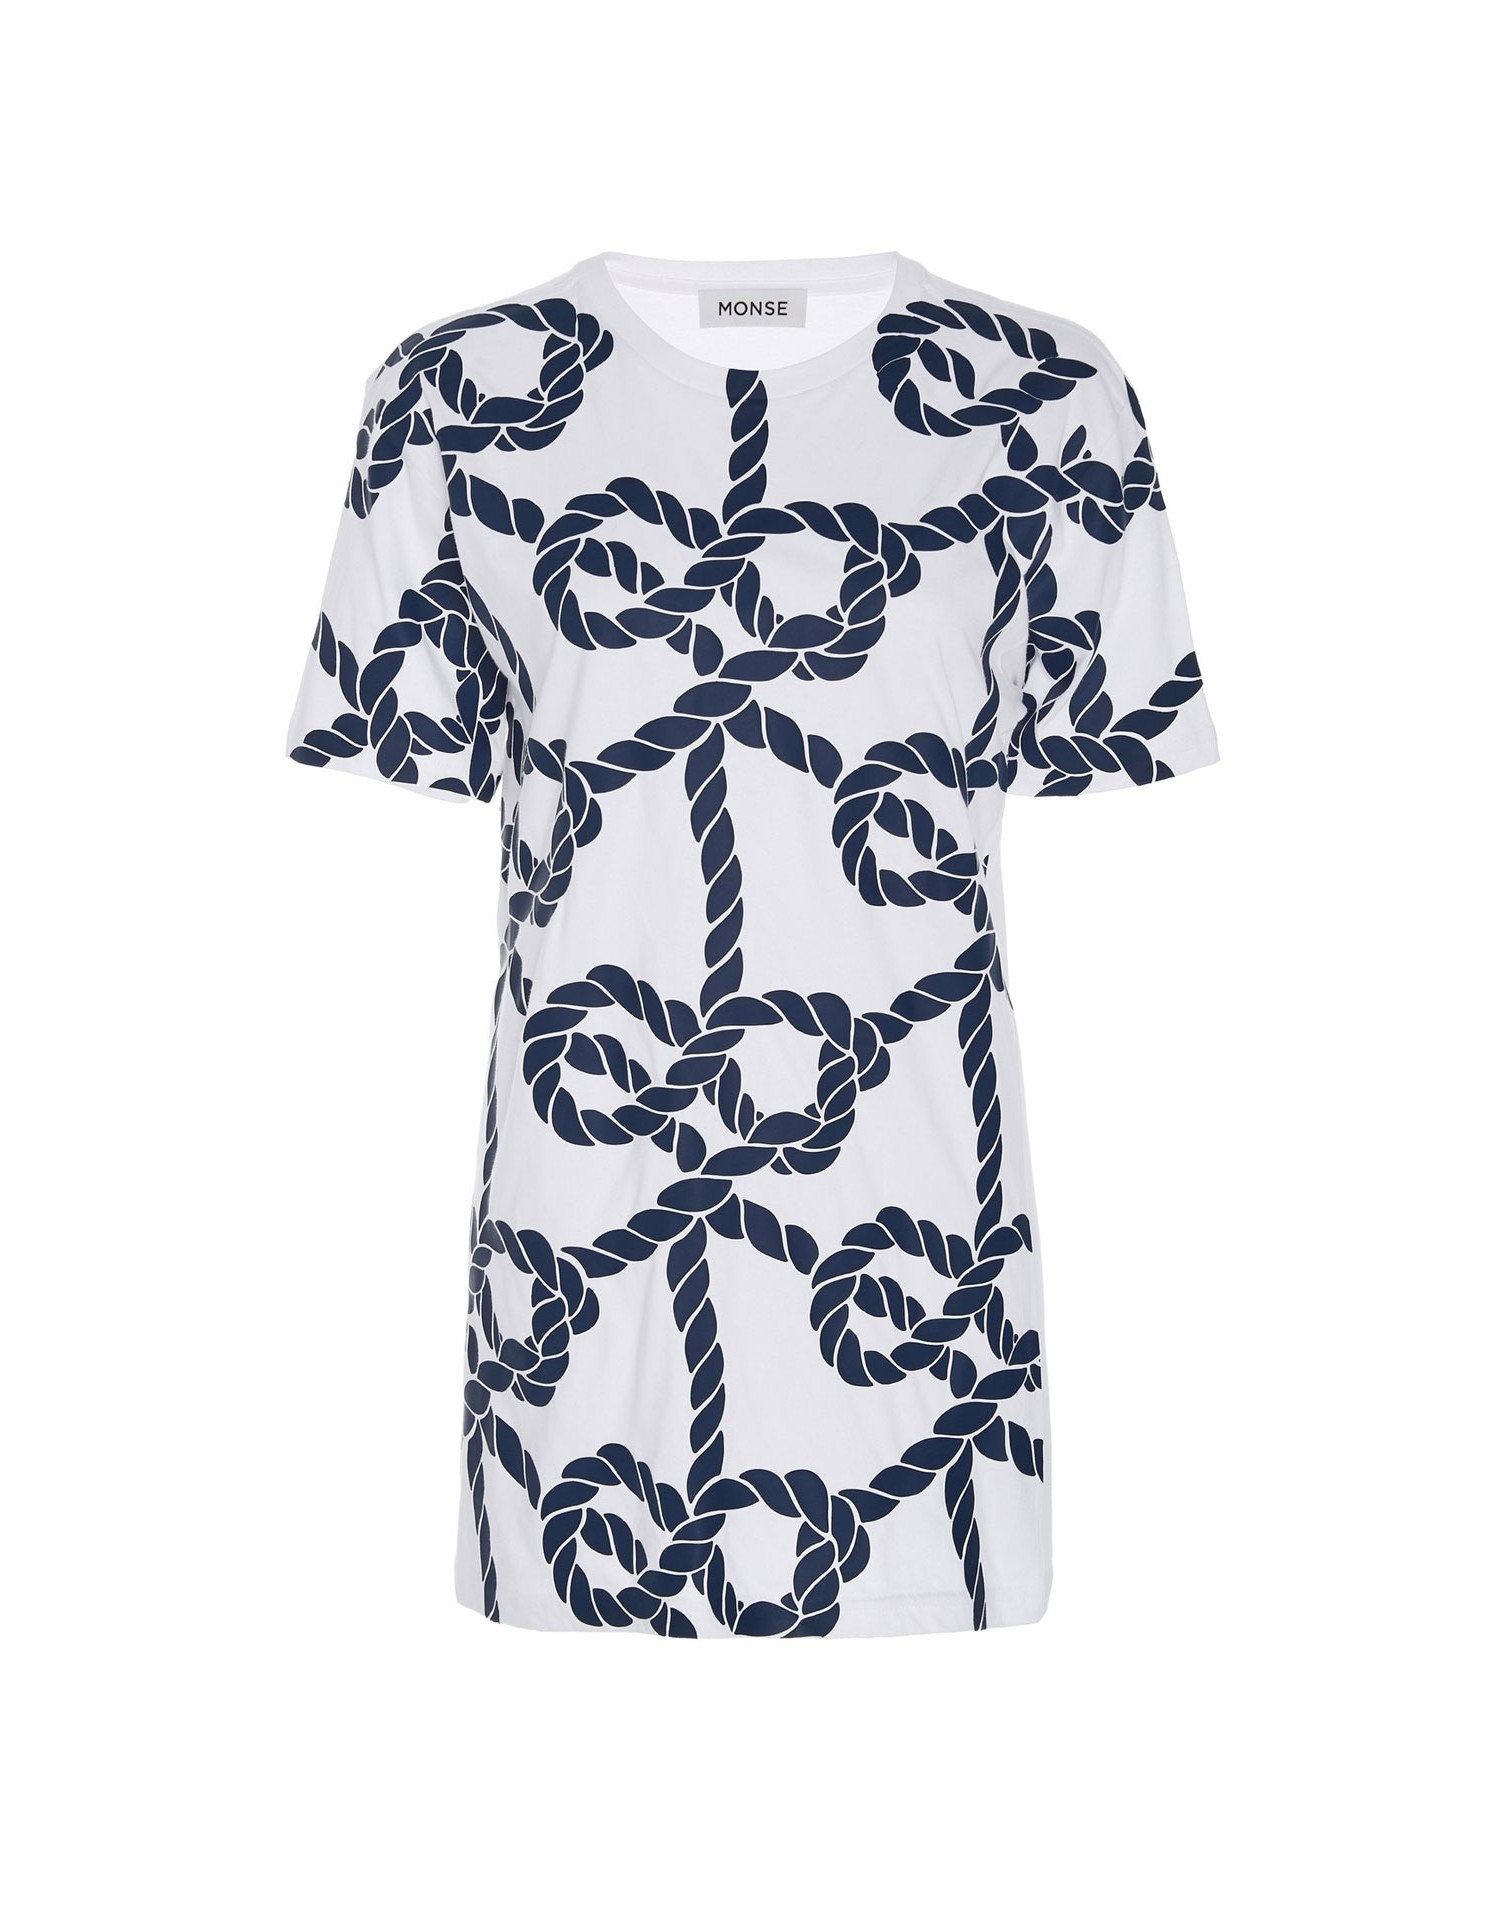 Monse Unisex Rope Print Tee Front